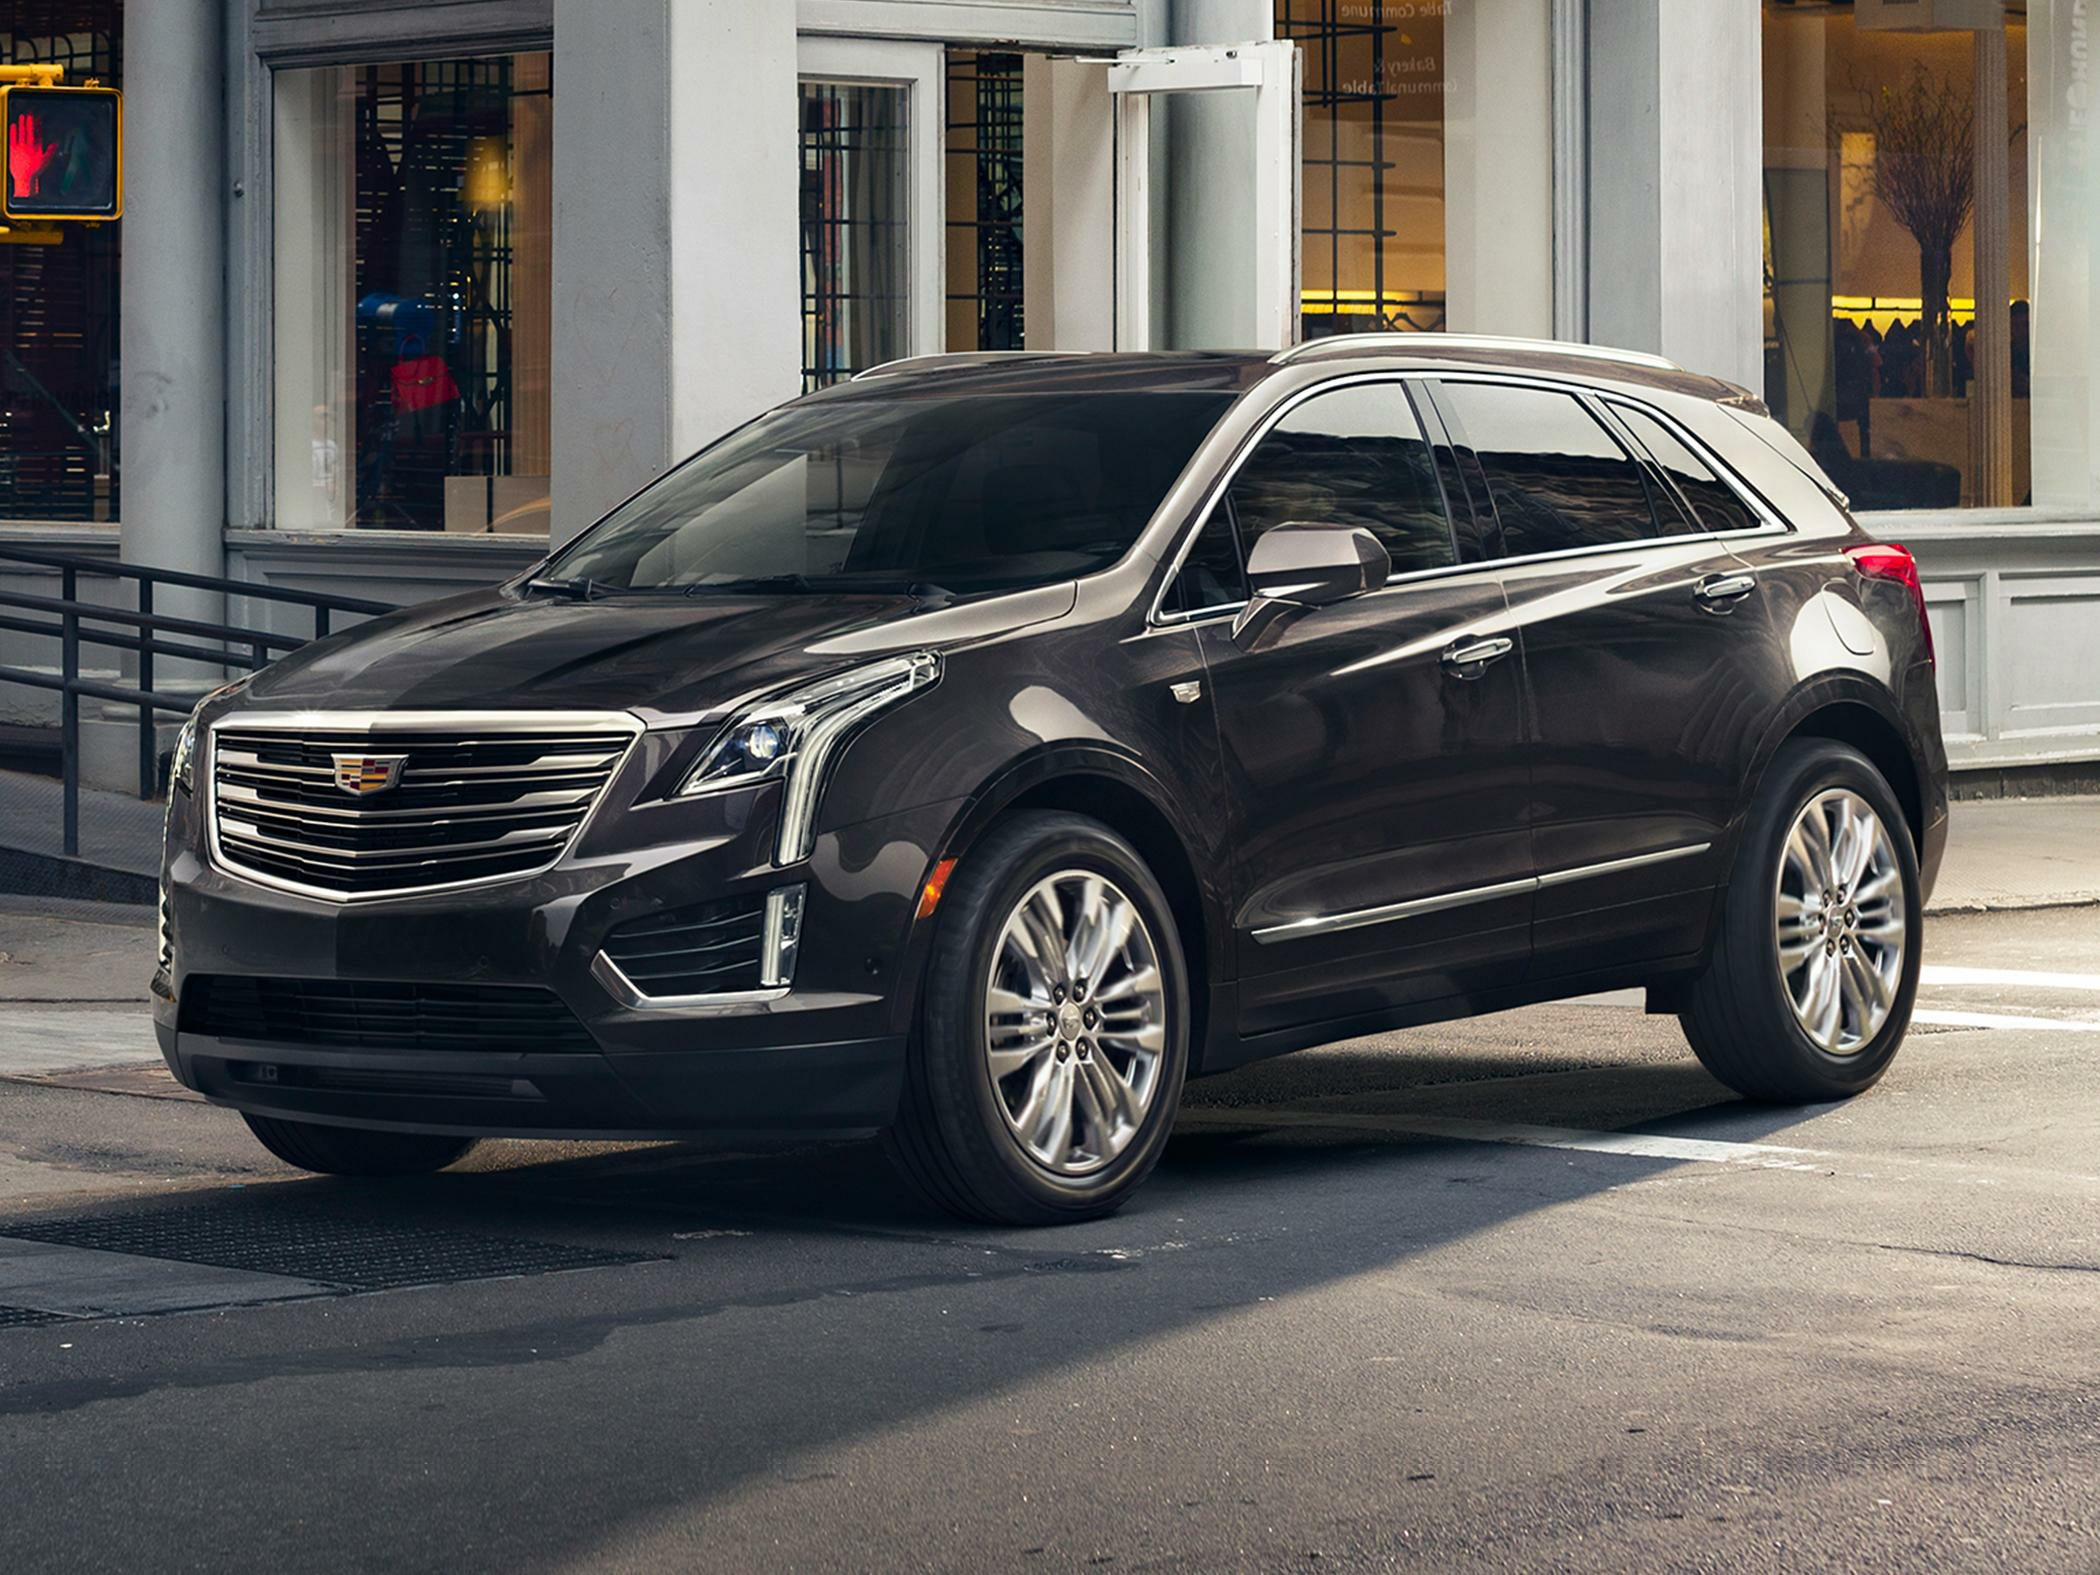 New 2018 Cadillac XT5 Price Photos Reviews Safety